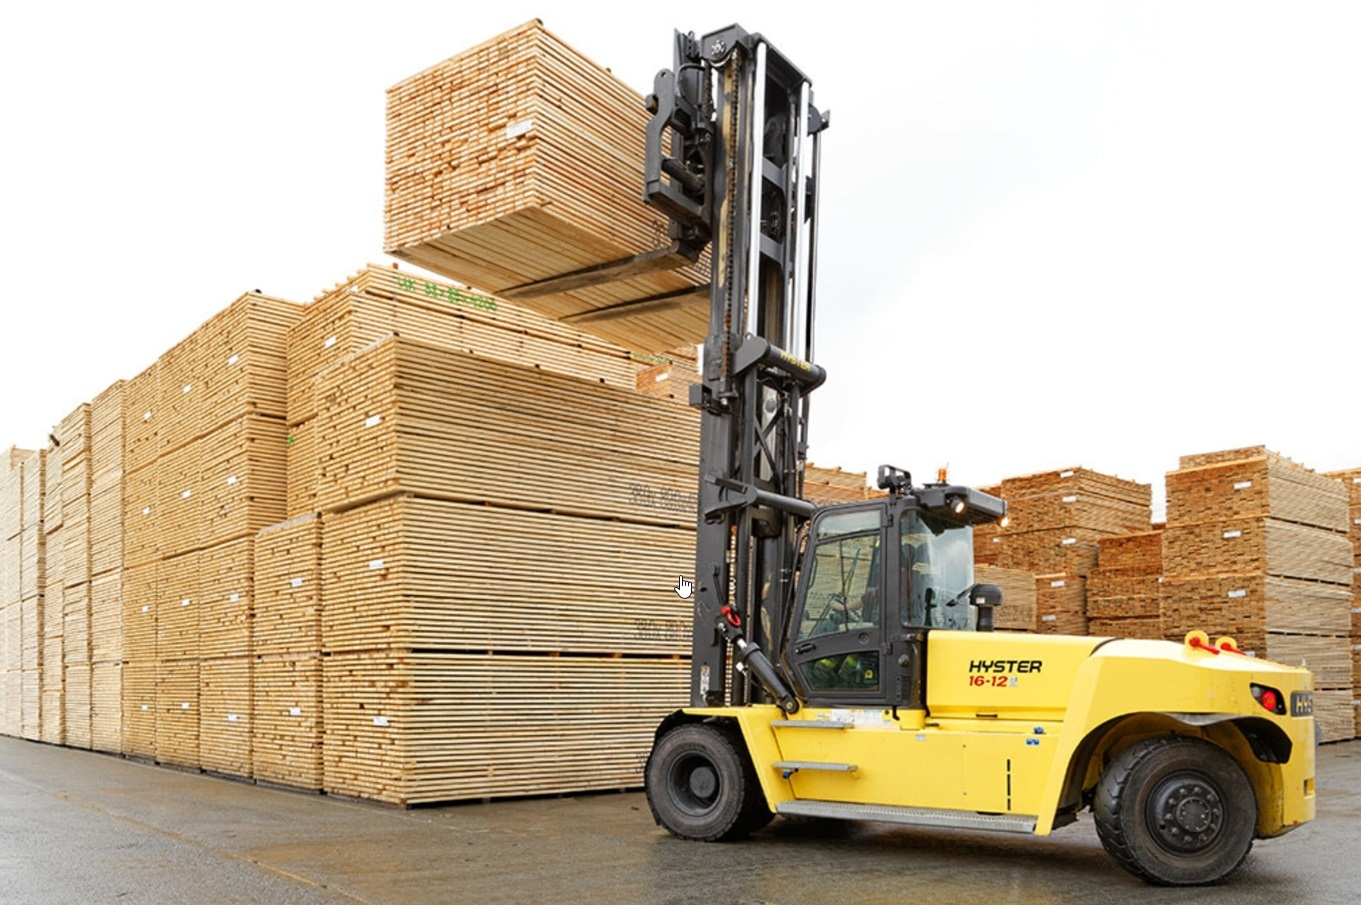 chariot elevateur gros tonnage Hyster manipule bois